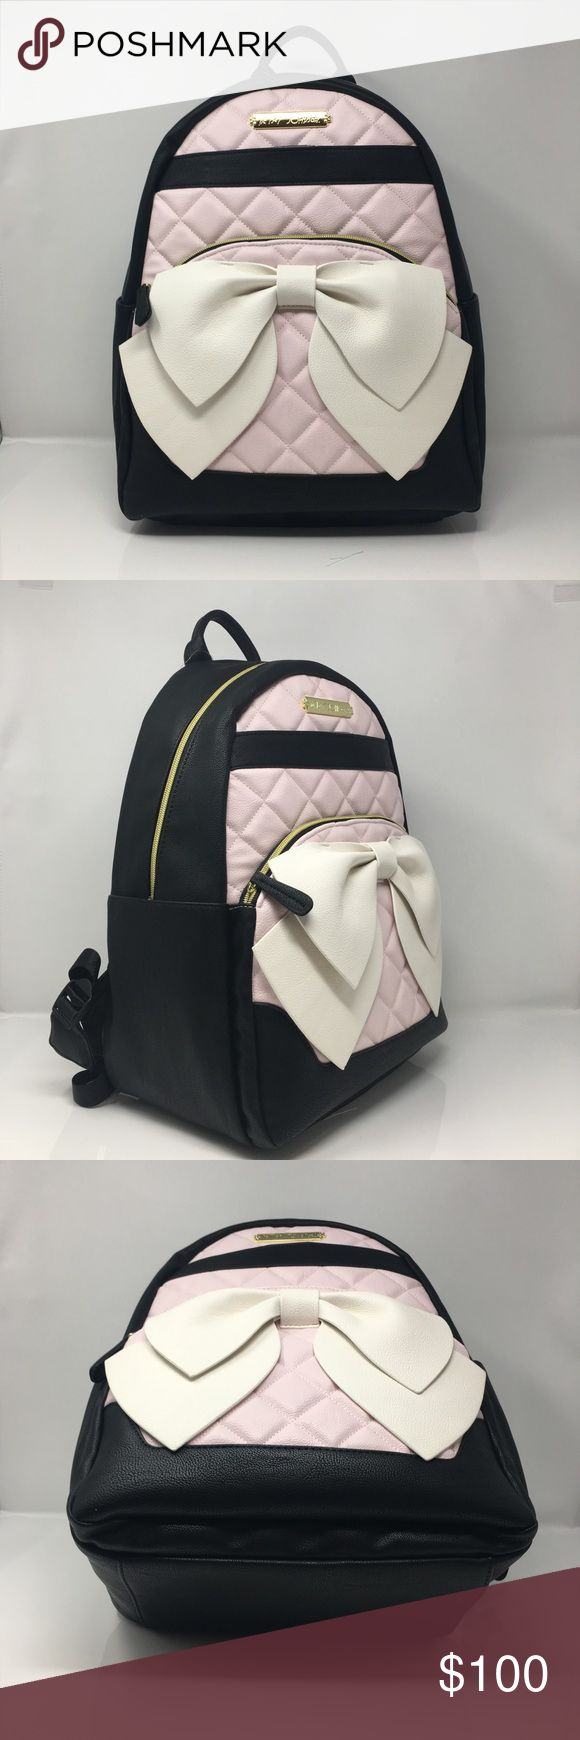 """🆕 Betsey Johnson backpack NWT A pretty take on classic ultrafunctional  Betsey Johnson backpack in faux leather, Betsey Johnson signature bow design, fully lined interior, double straps, zip closure, gold tone exterior hardware, zip pocket & 1 key finder, laptop compatible. 12""""x15""""x6"""" (WxHxD) NWT Betsey Johnson Bags Backpacks"""